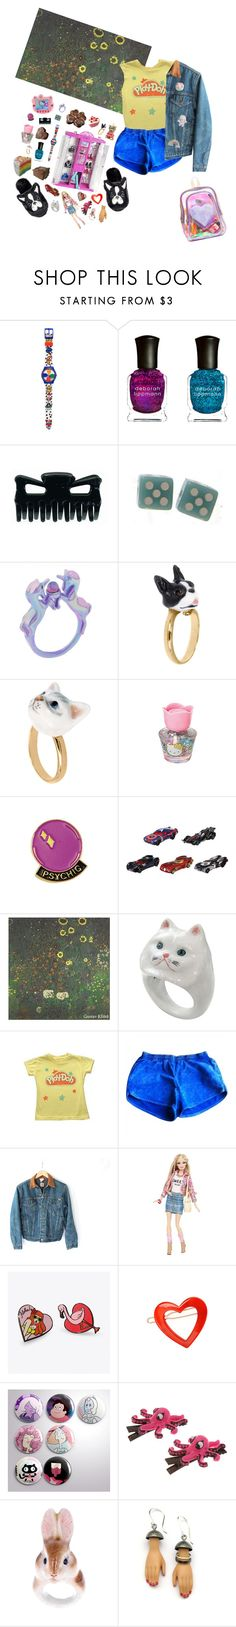 """""""I used to have like 4 friends in kindergarten"""" by queenofrocknroll ❤ liked on Polyvore featuring Deborah Lippmann, Hello Kitty, UNIF, Nach Bijoux, Famous Forever, American Apparel, Carhartt, Punky Pins, France Luxe and Margaux Lange"""